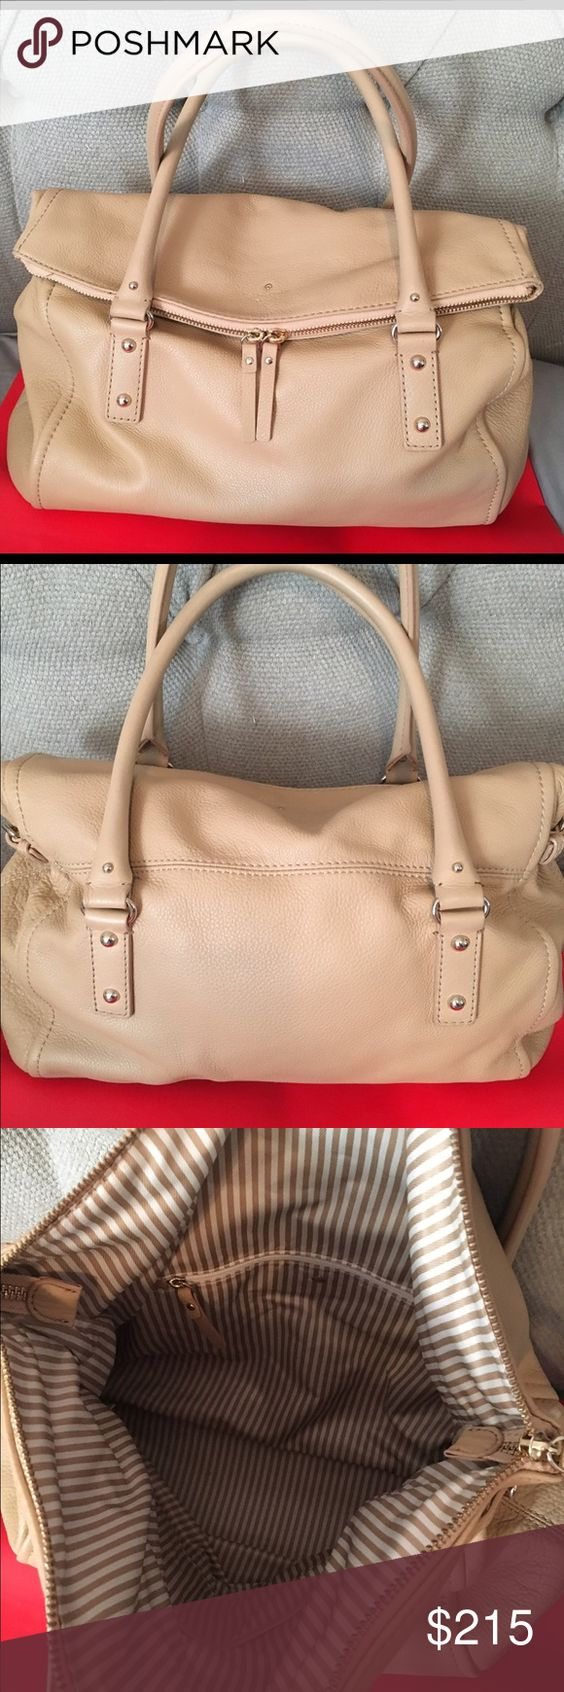 Kate Spade Cobble Hill Leslie Large Bag Beautiful Kate Spade Cobble Hill Leslie bag. Beige color to go with everything. It is the large size so it fits a ton. Has large zipper pocket that has a small zip pocket inside as well as two pockets. Also has a smaller pocket in front that the large section goes over when shut. Great for travel! In fantastic condition! kate spade Bags Shoulder Bags